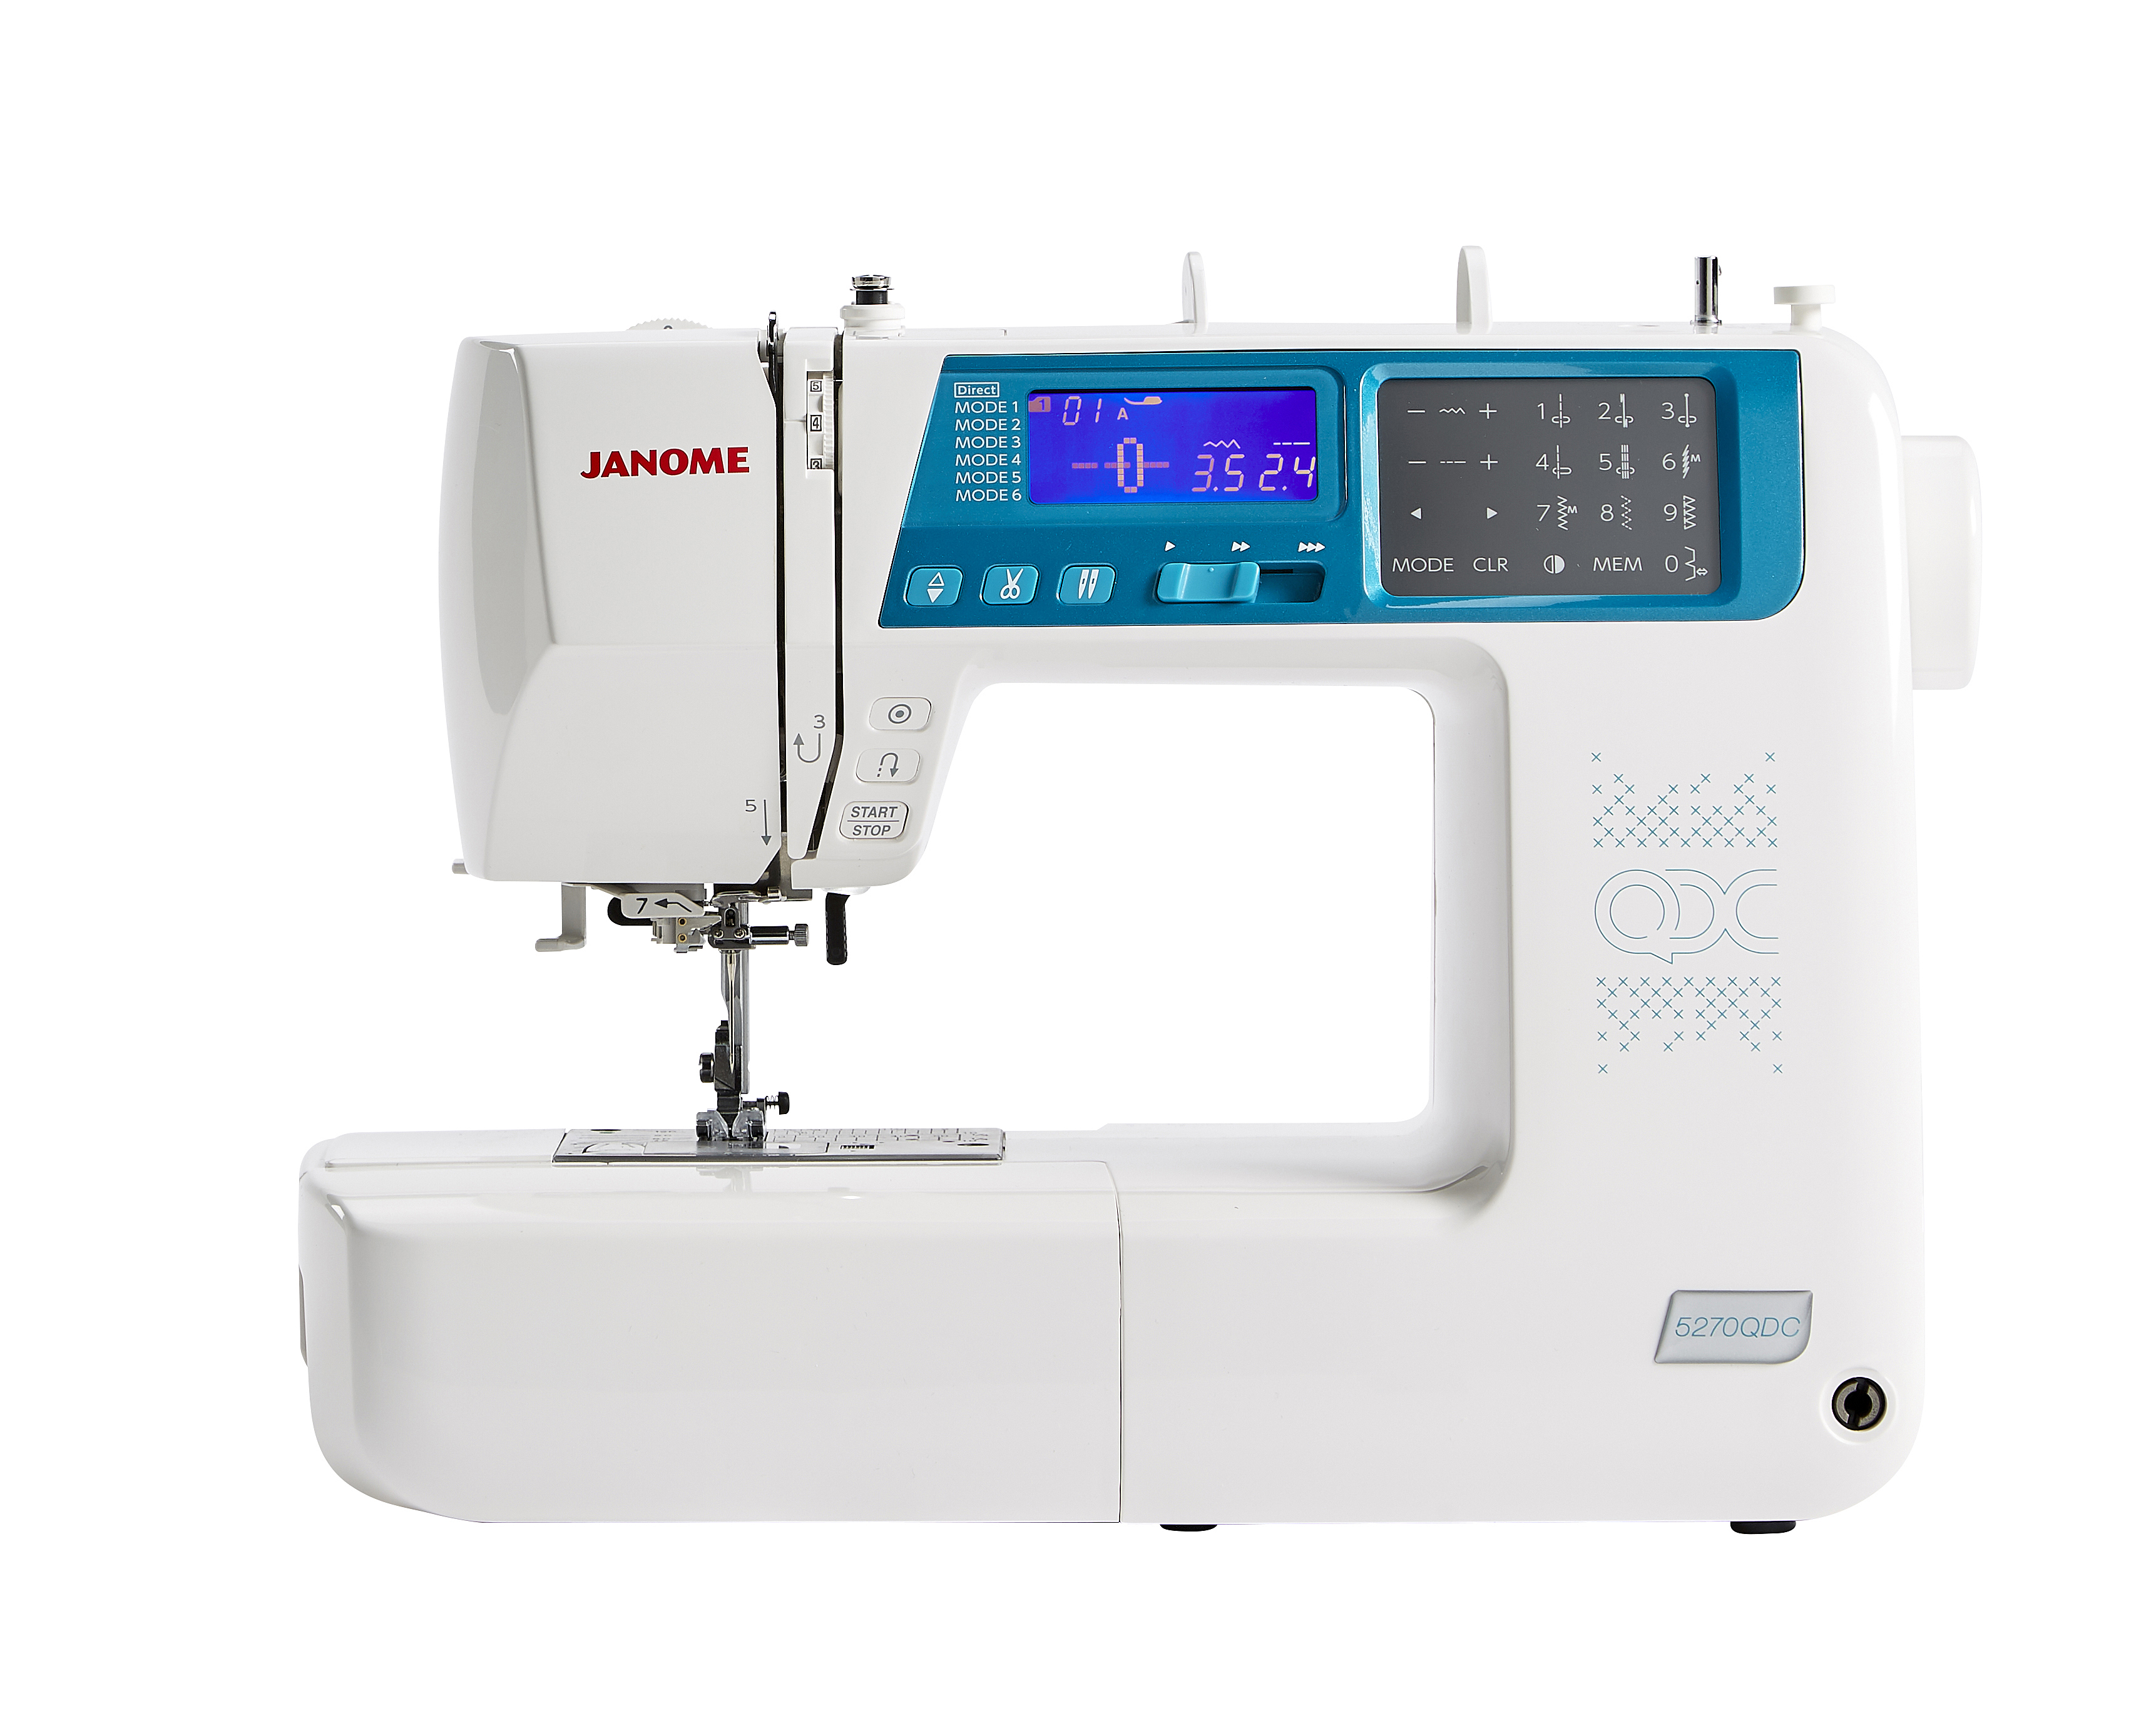 Janome 5270QDC Sewing Machine NEW